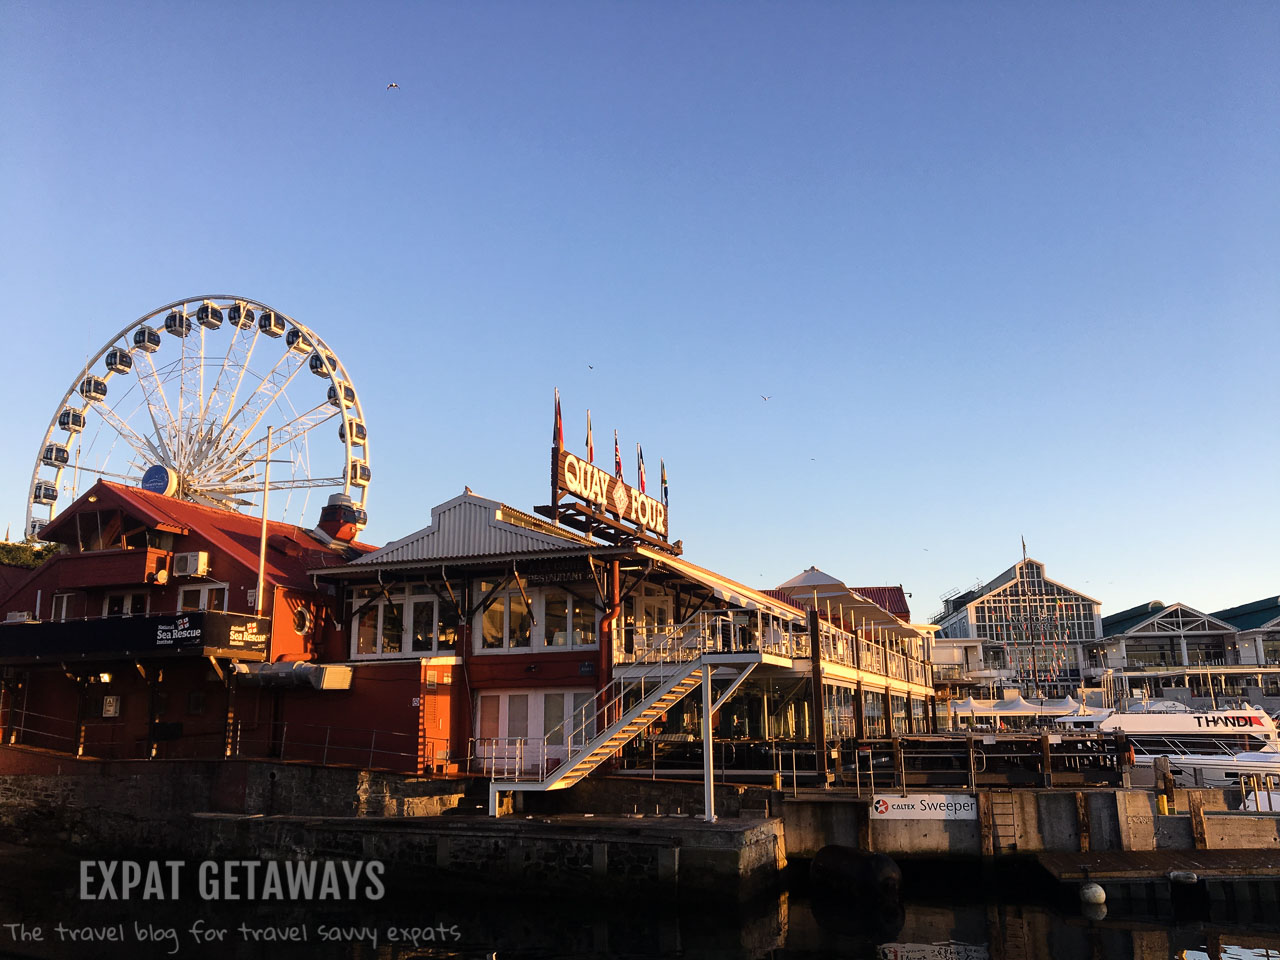 The lively V & A Waterfront is a magnet for tourists with good restaurants and lots of shopping. Expat Getaways One Week in Cape Town, South Africa.